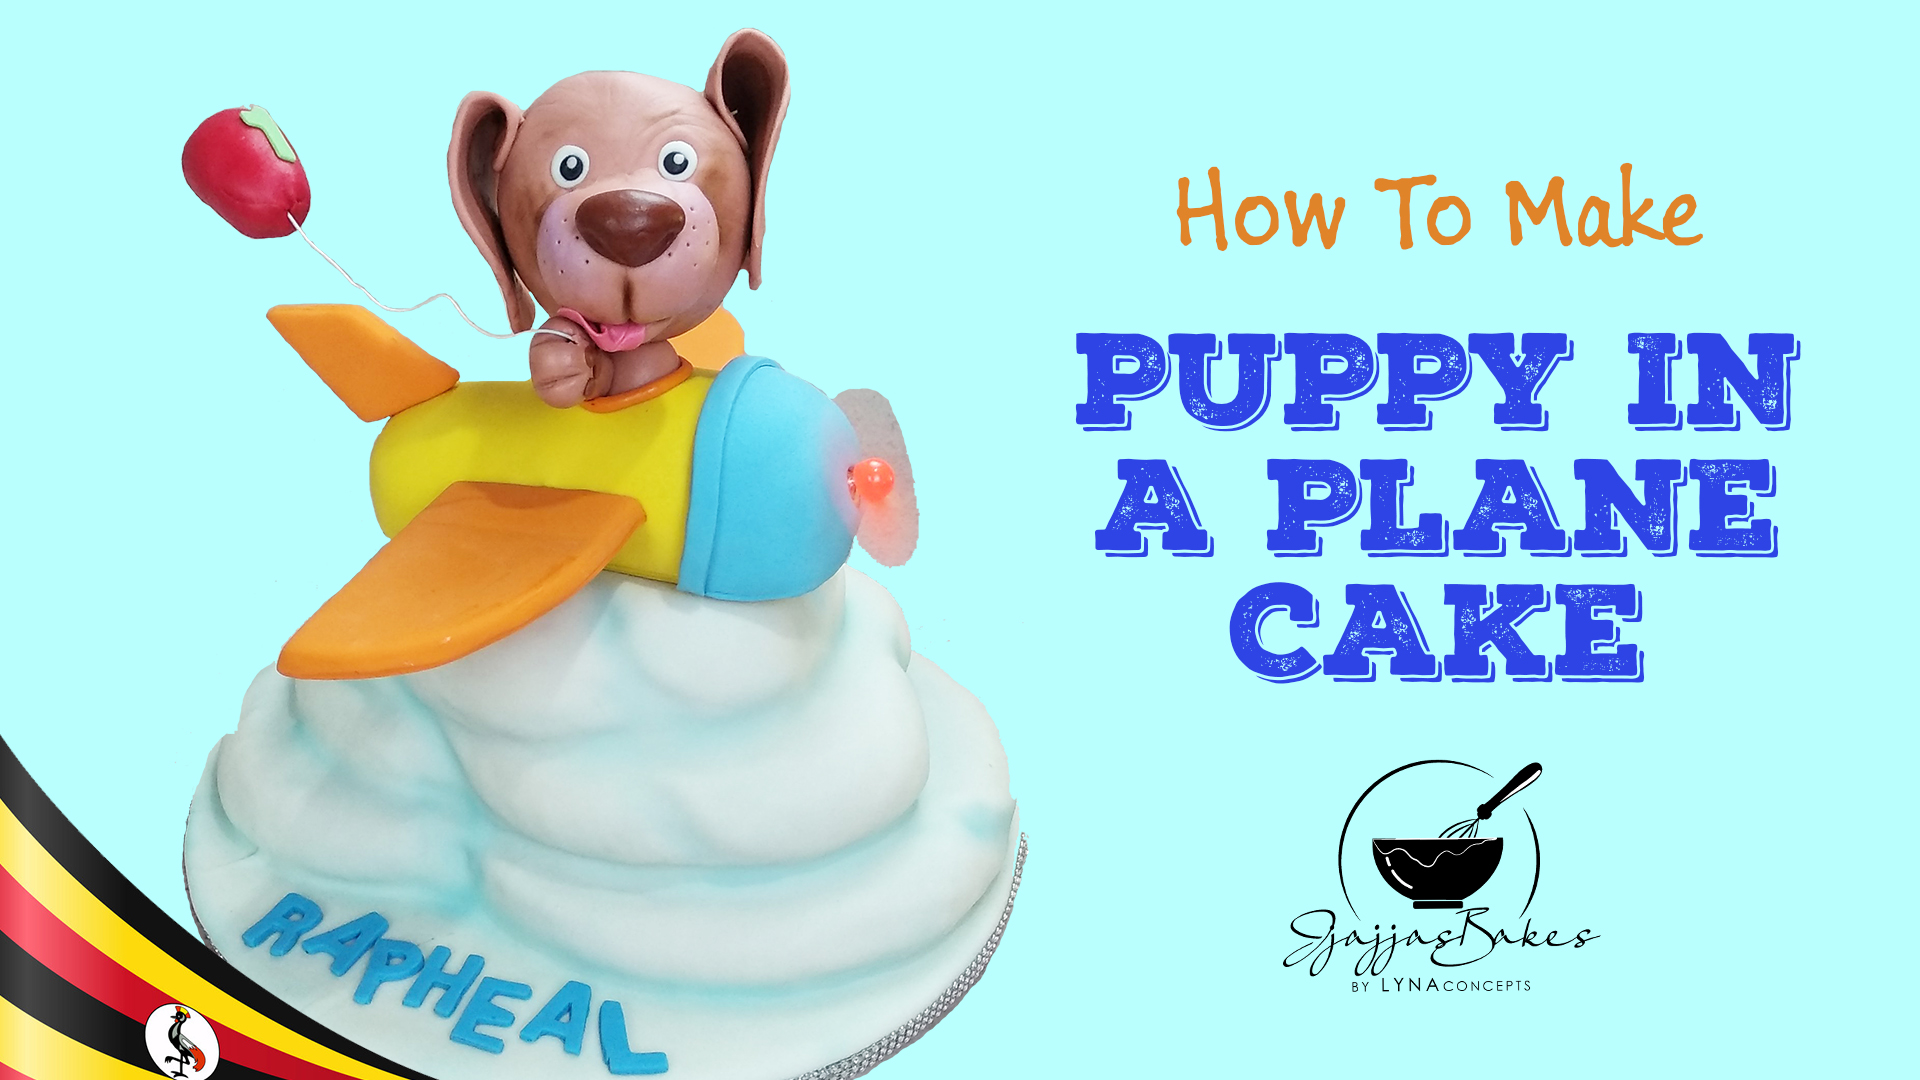 JjajjasBakes_By_LYNAconcepts_Puppy_In_A_Plane_Cake_L 01